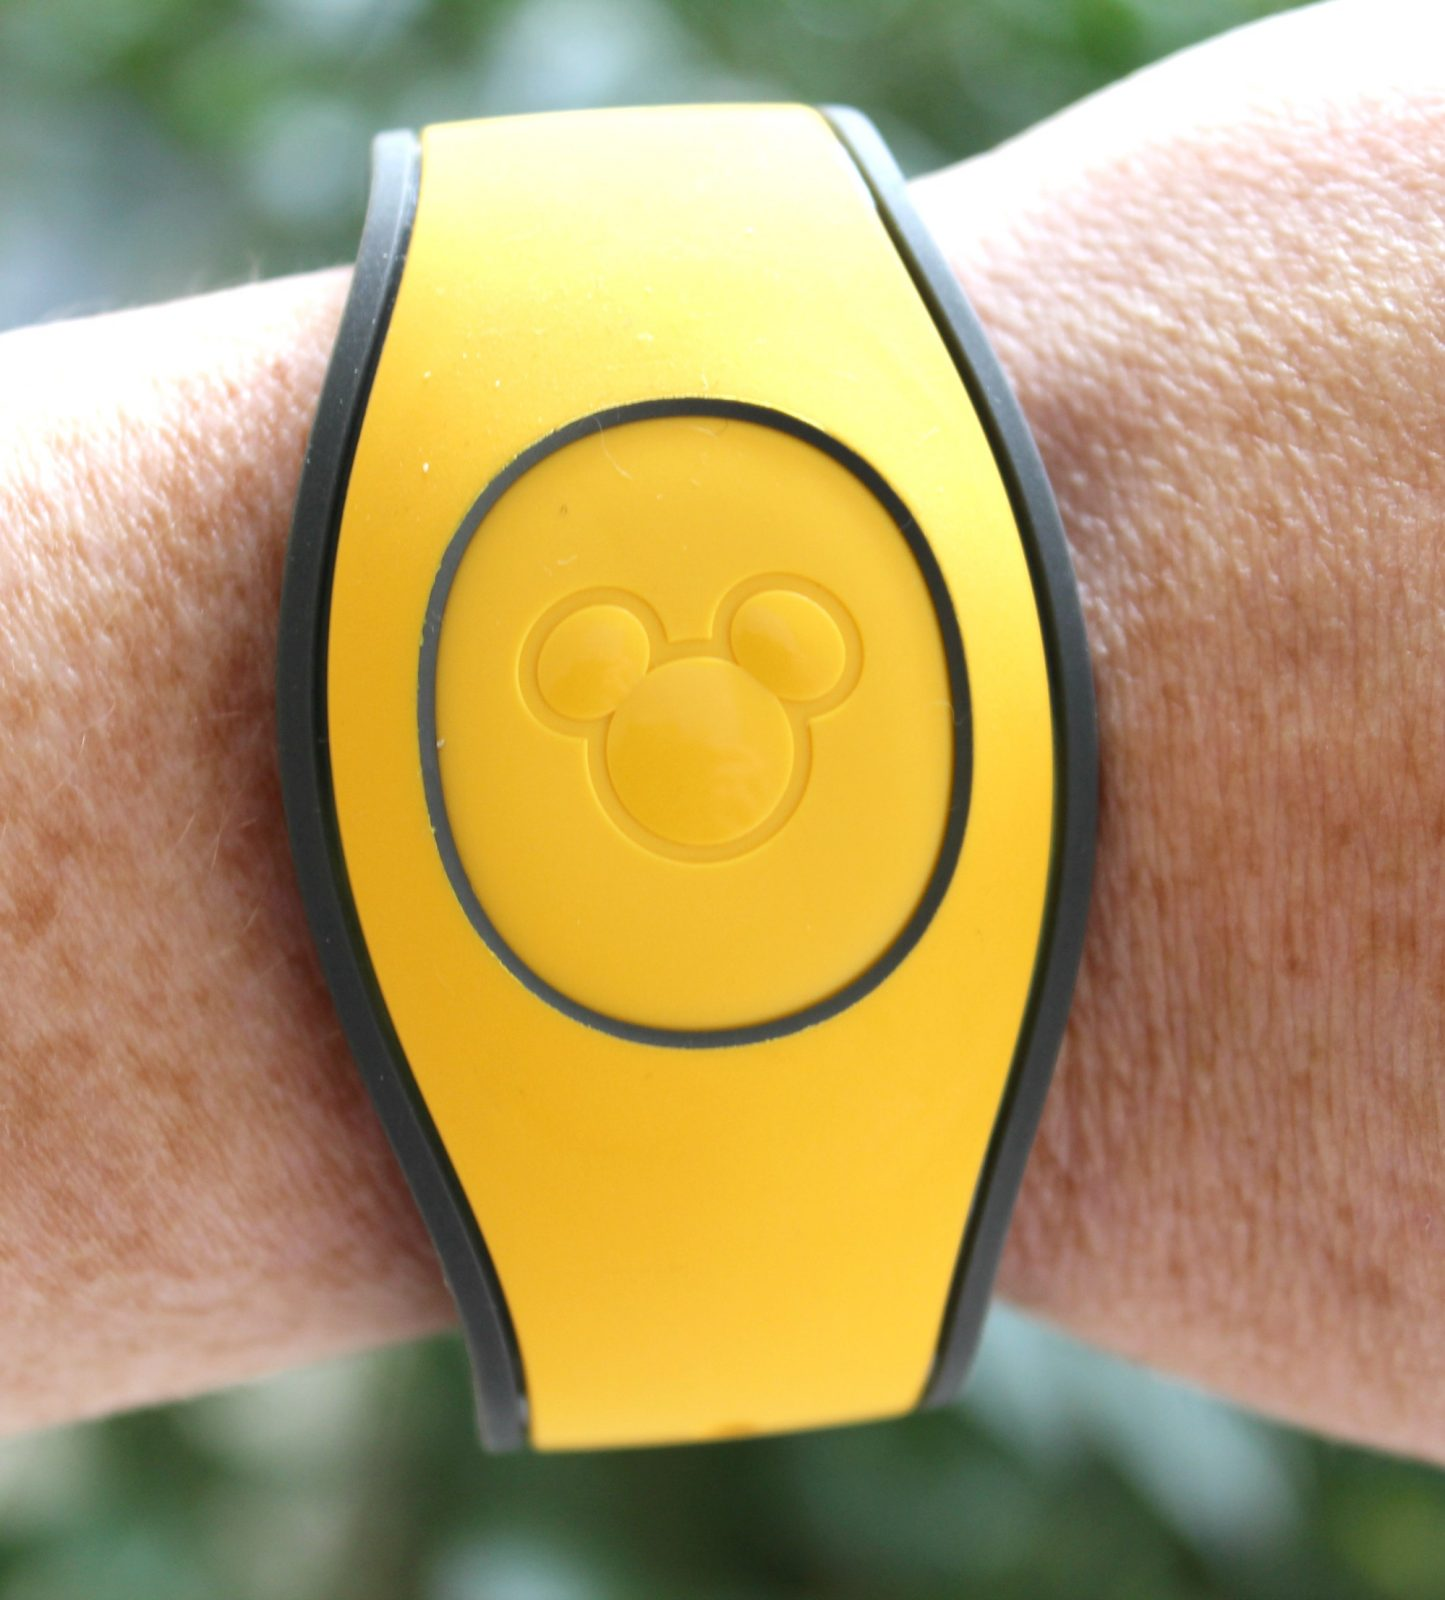 yellow disney magic band on a wrist